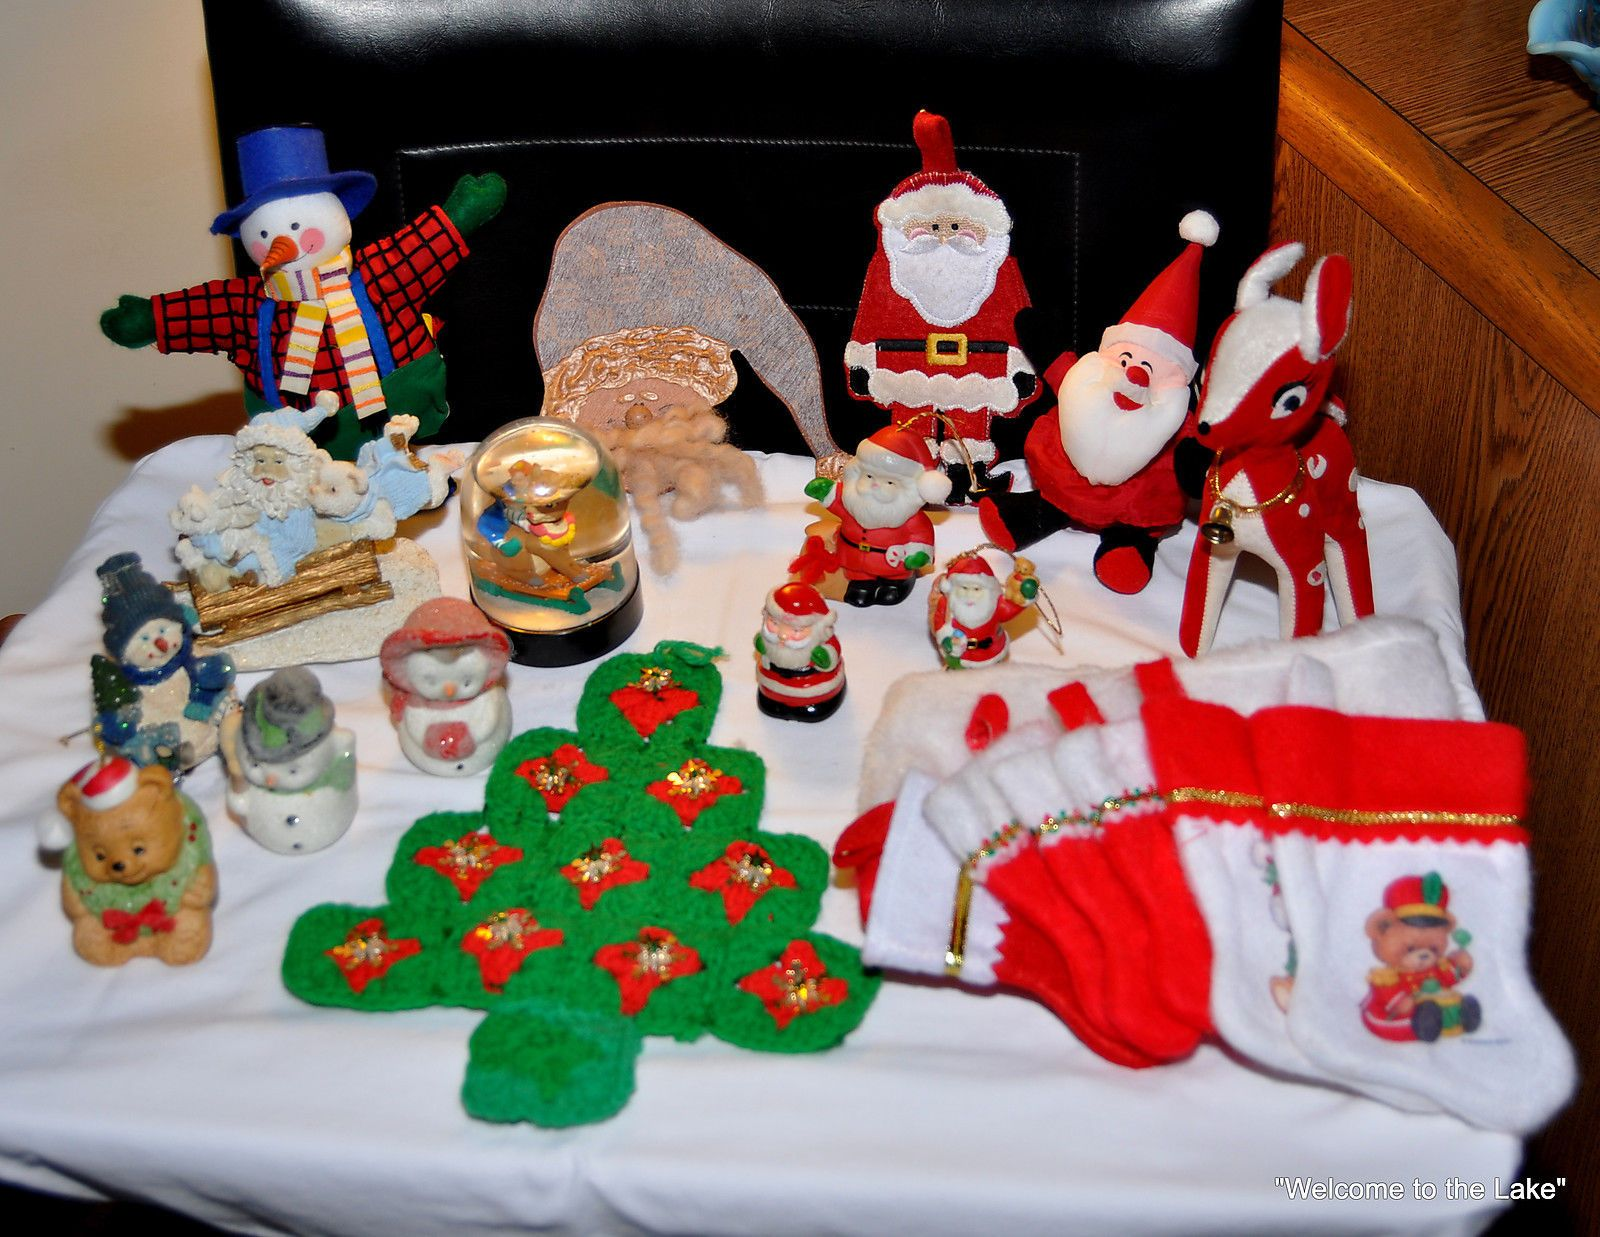 CHRISTMAS DECORATIONS - Lot of 22 Interesting Christmas Decorations